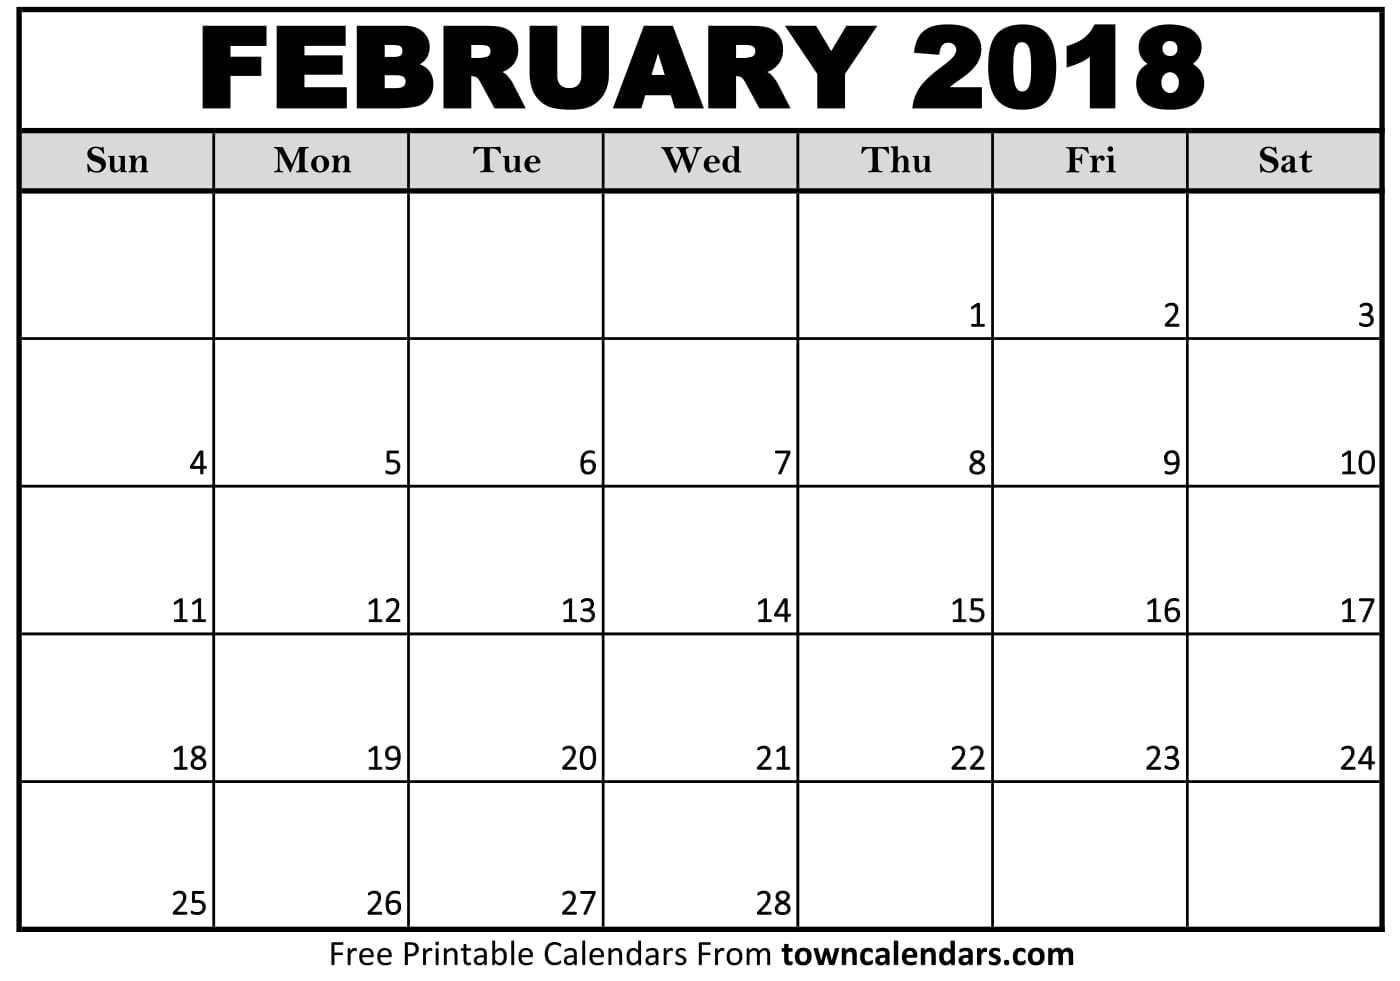 Printable February 2018 Calendar Template PDF WORD Excel Printable February Calendar 2018 Download